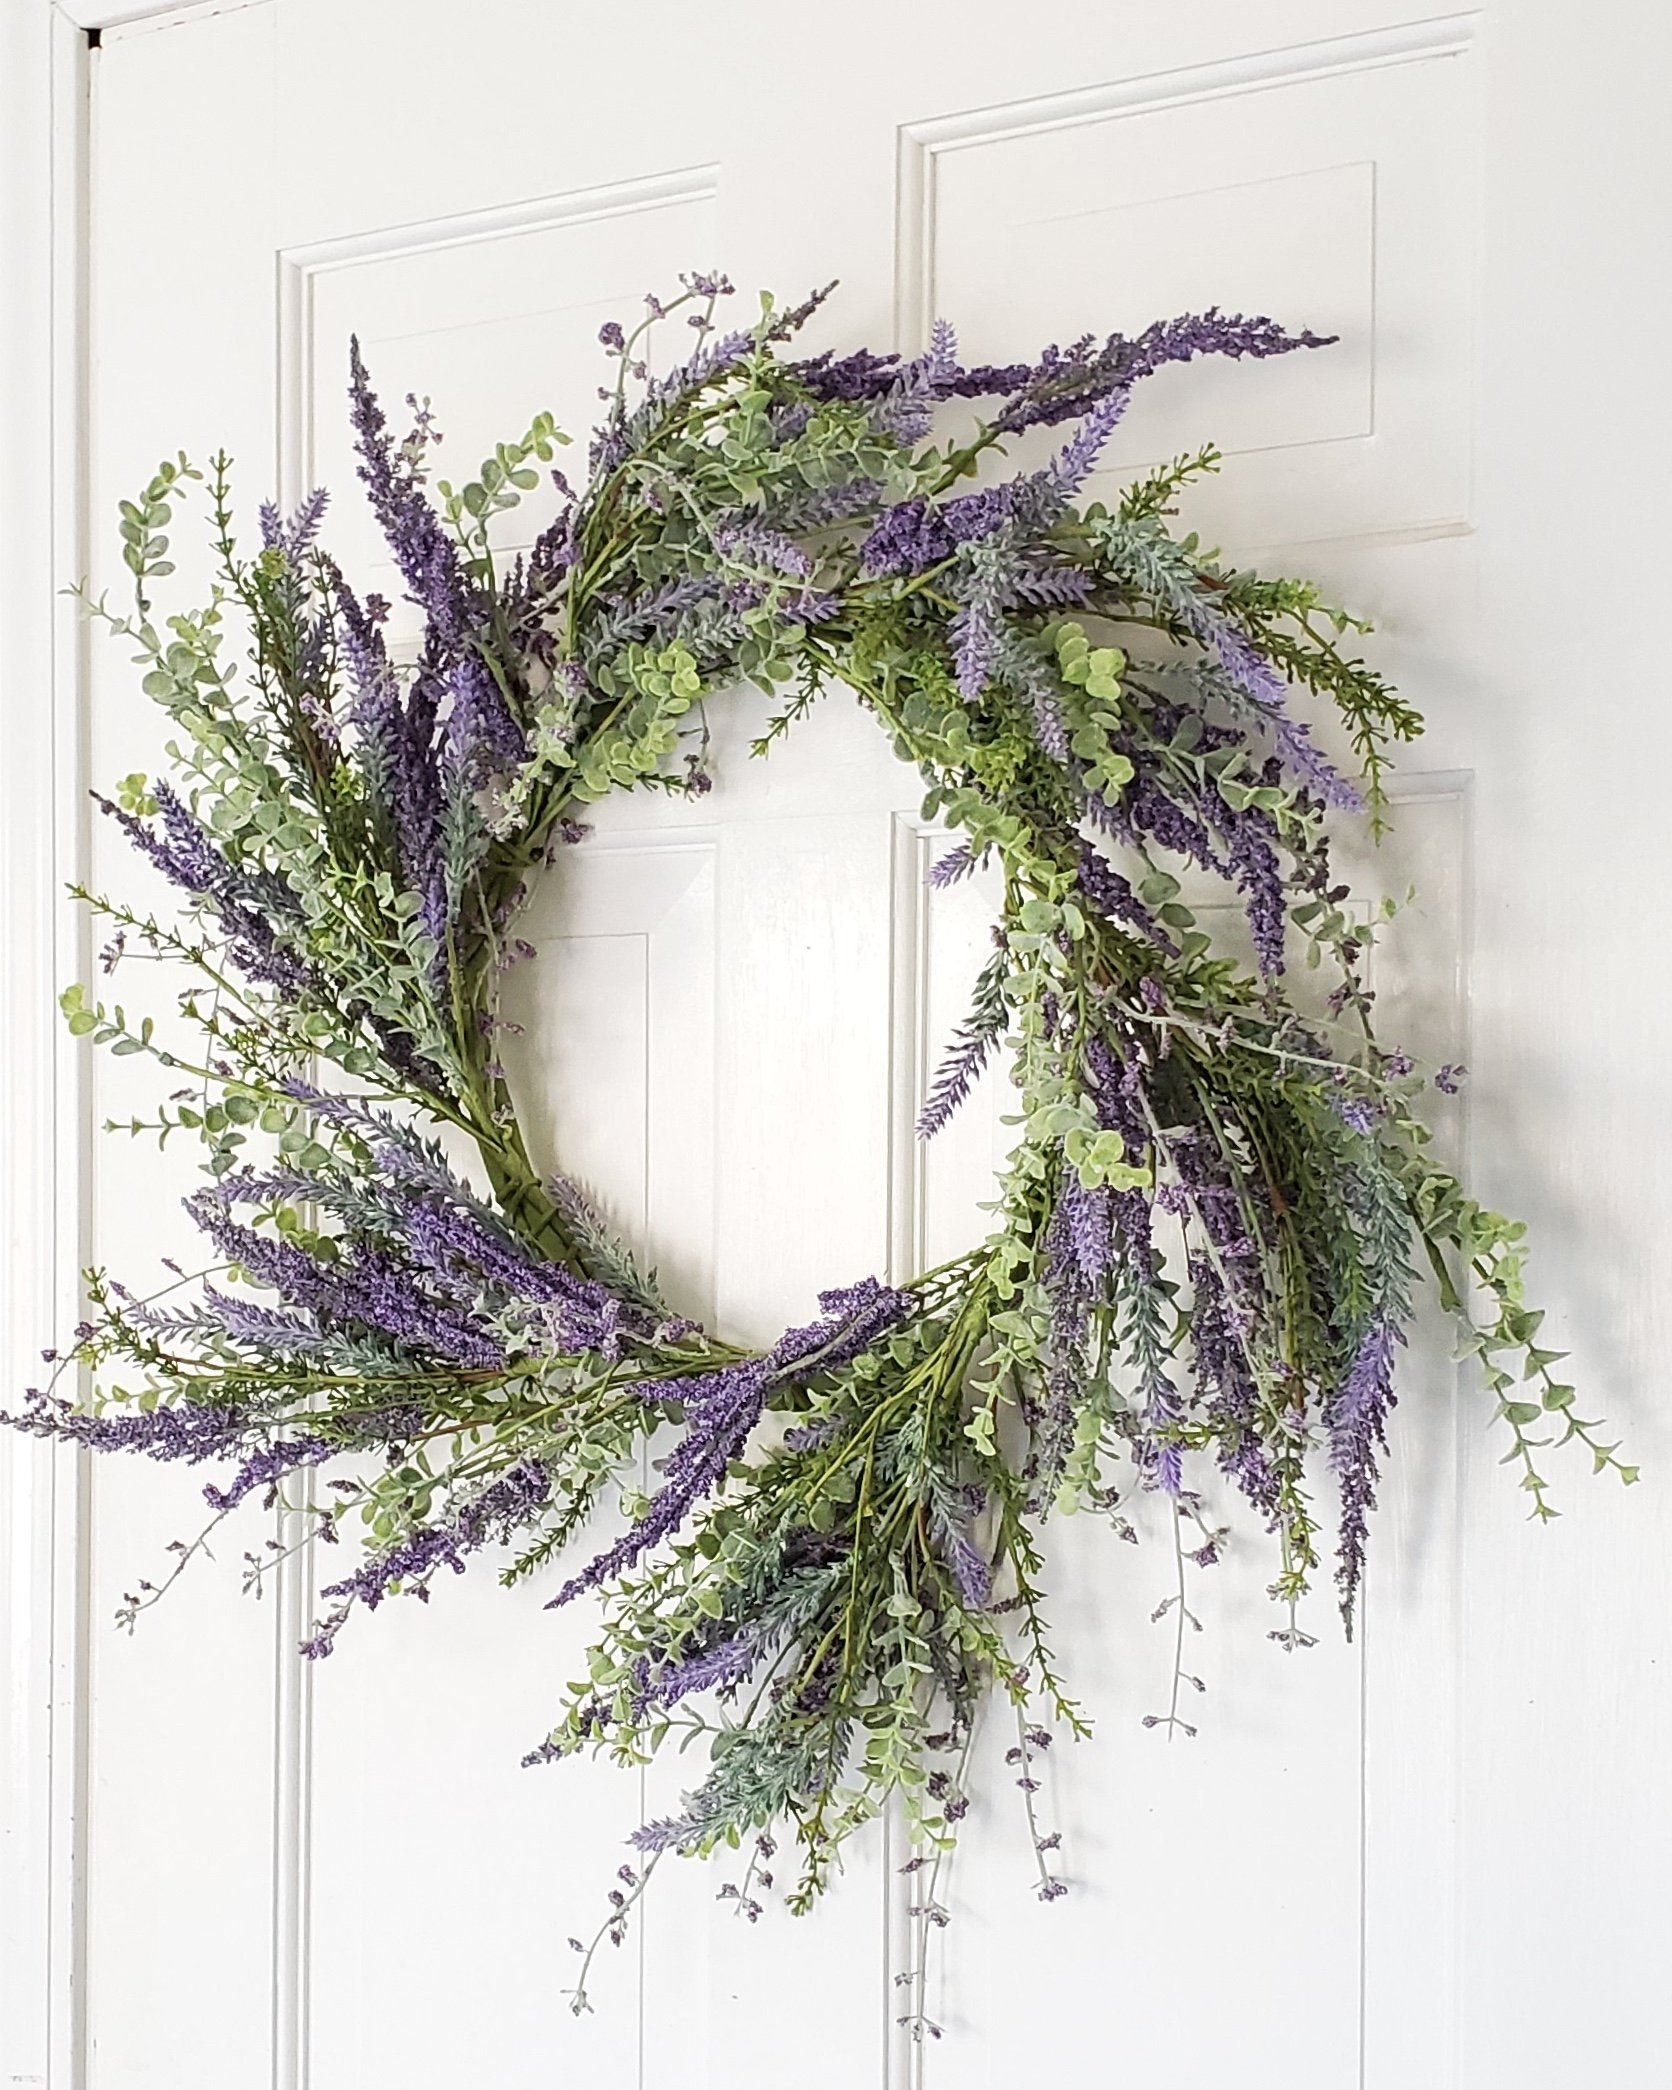 Spring Front Door Wreath, Lavender Wreath, Eucalyptus Wreath, Everyday Wreath, Farmhouse Wreath, Rustic Farmhouse Wreath, Wreaths, Purple Wreaths, Spring Decor, Front Door Wreath